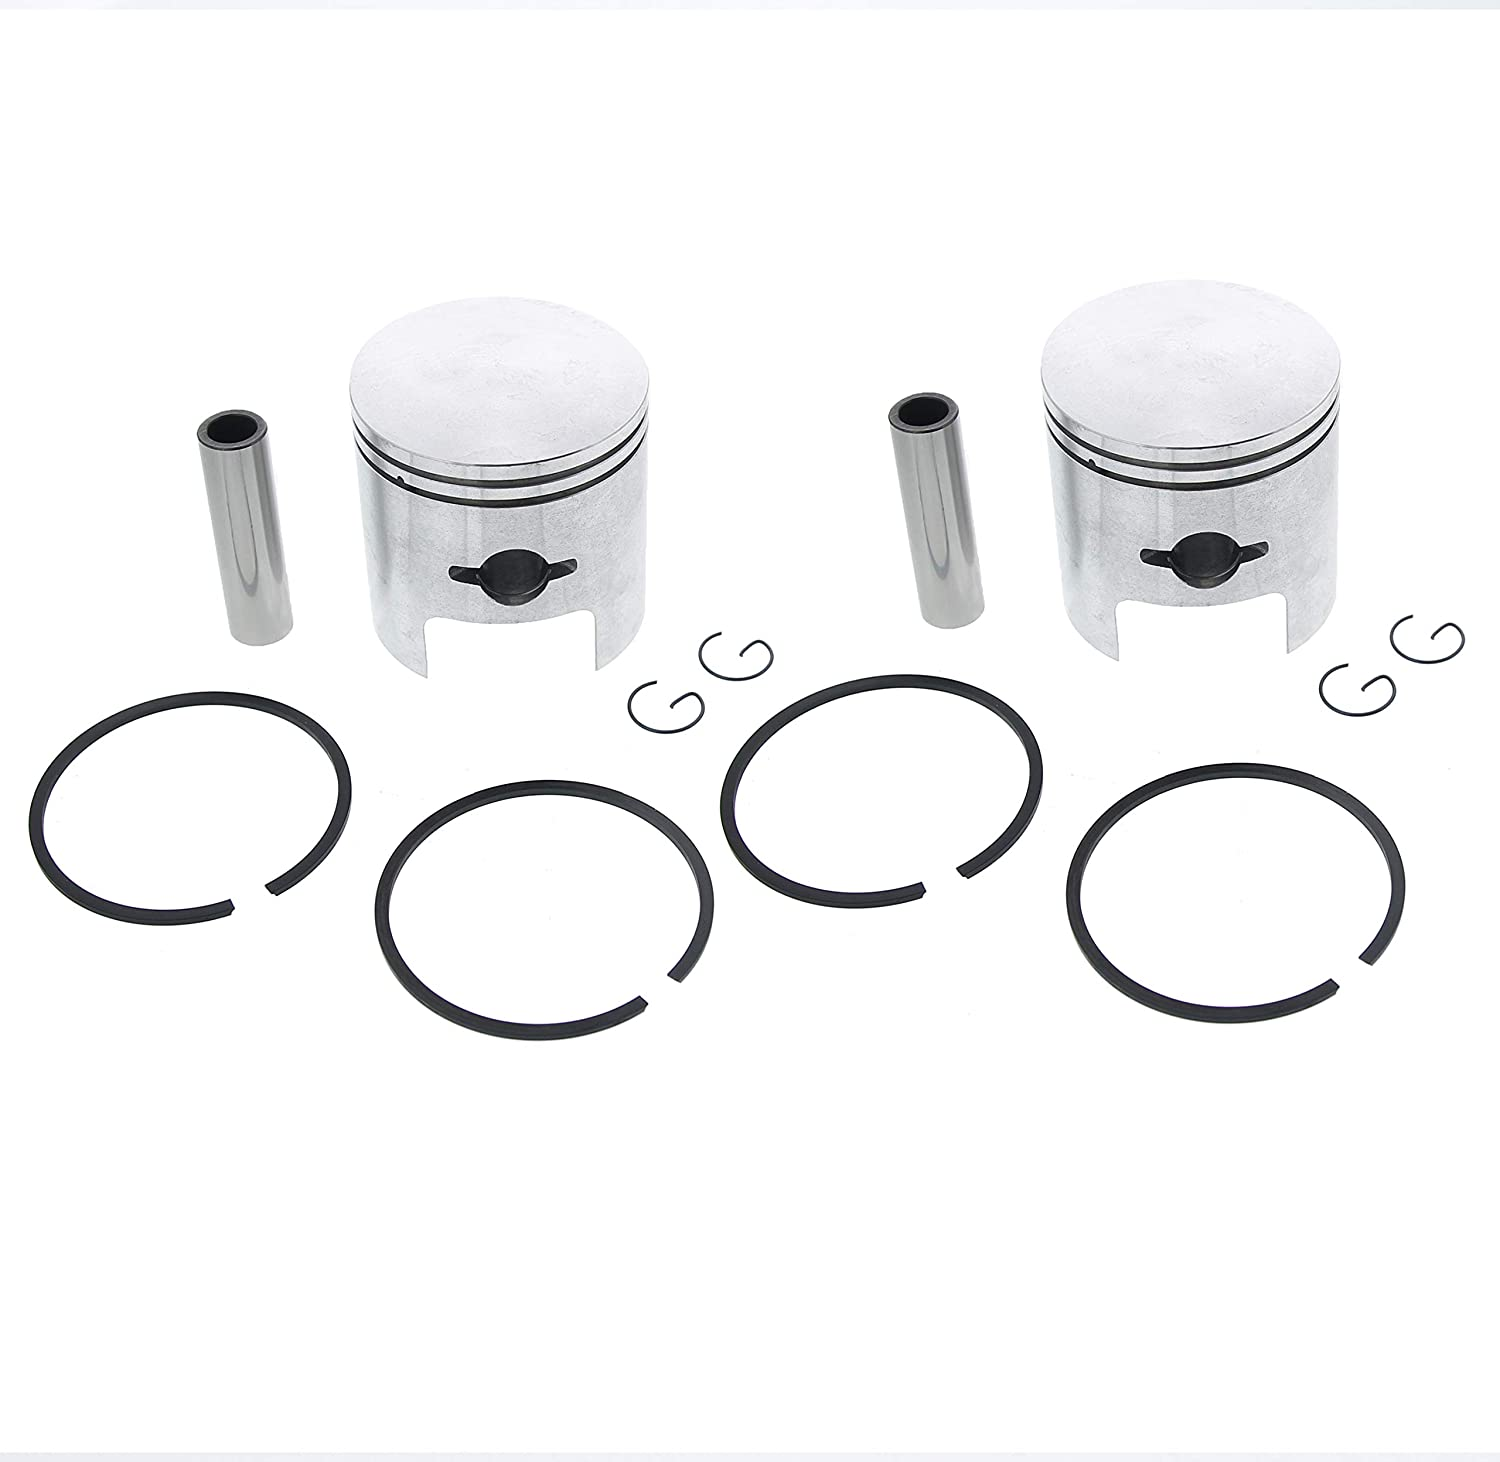 Piston Kit fits Arctic Cat Puma 440 1972 1973 Snowmobile by Race-Driven x2